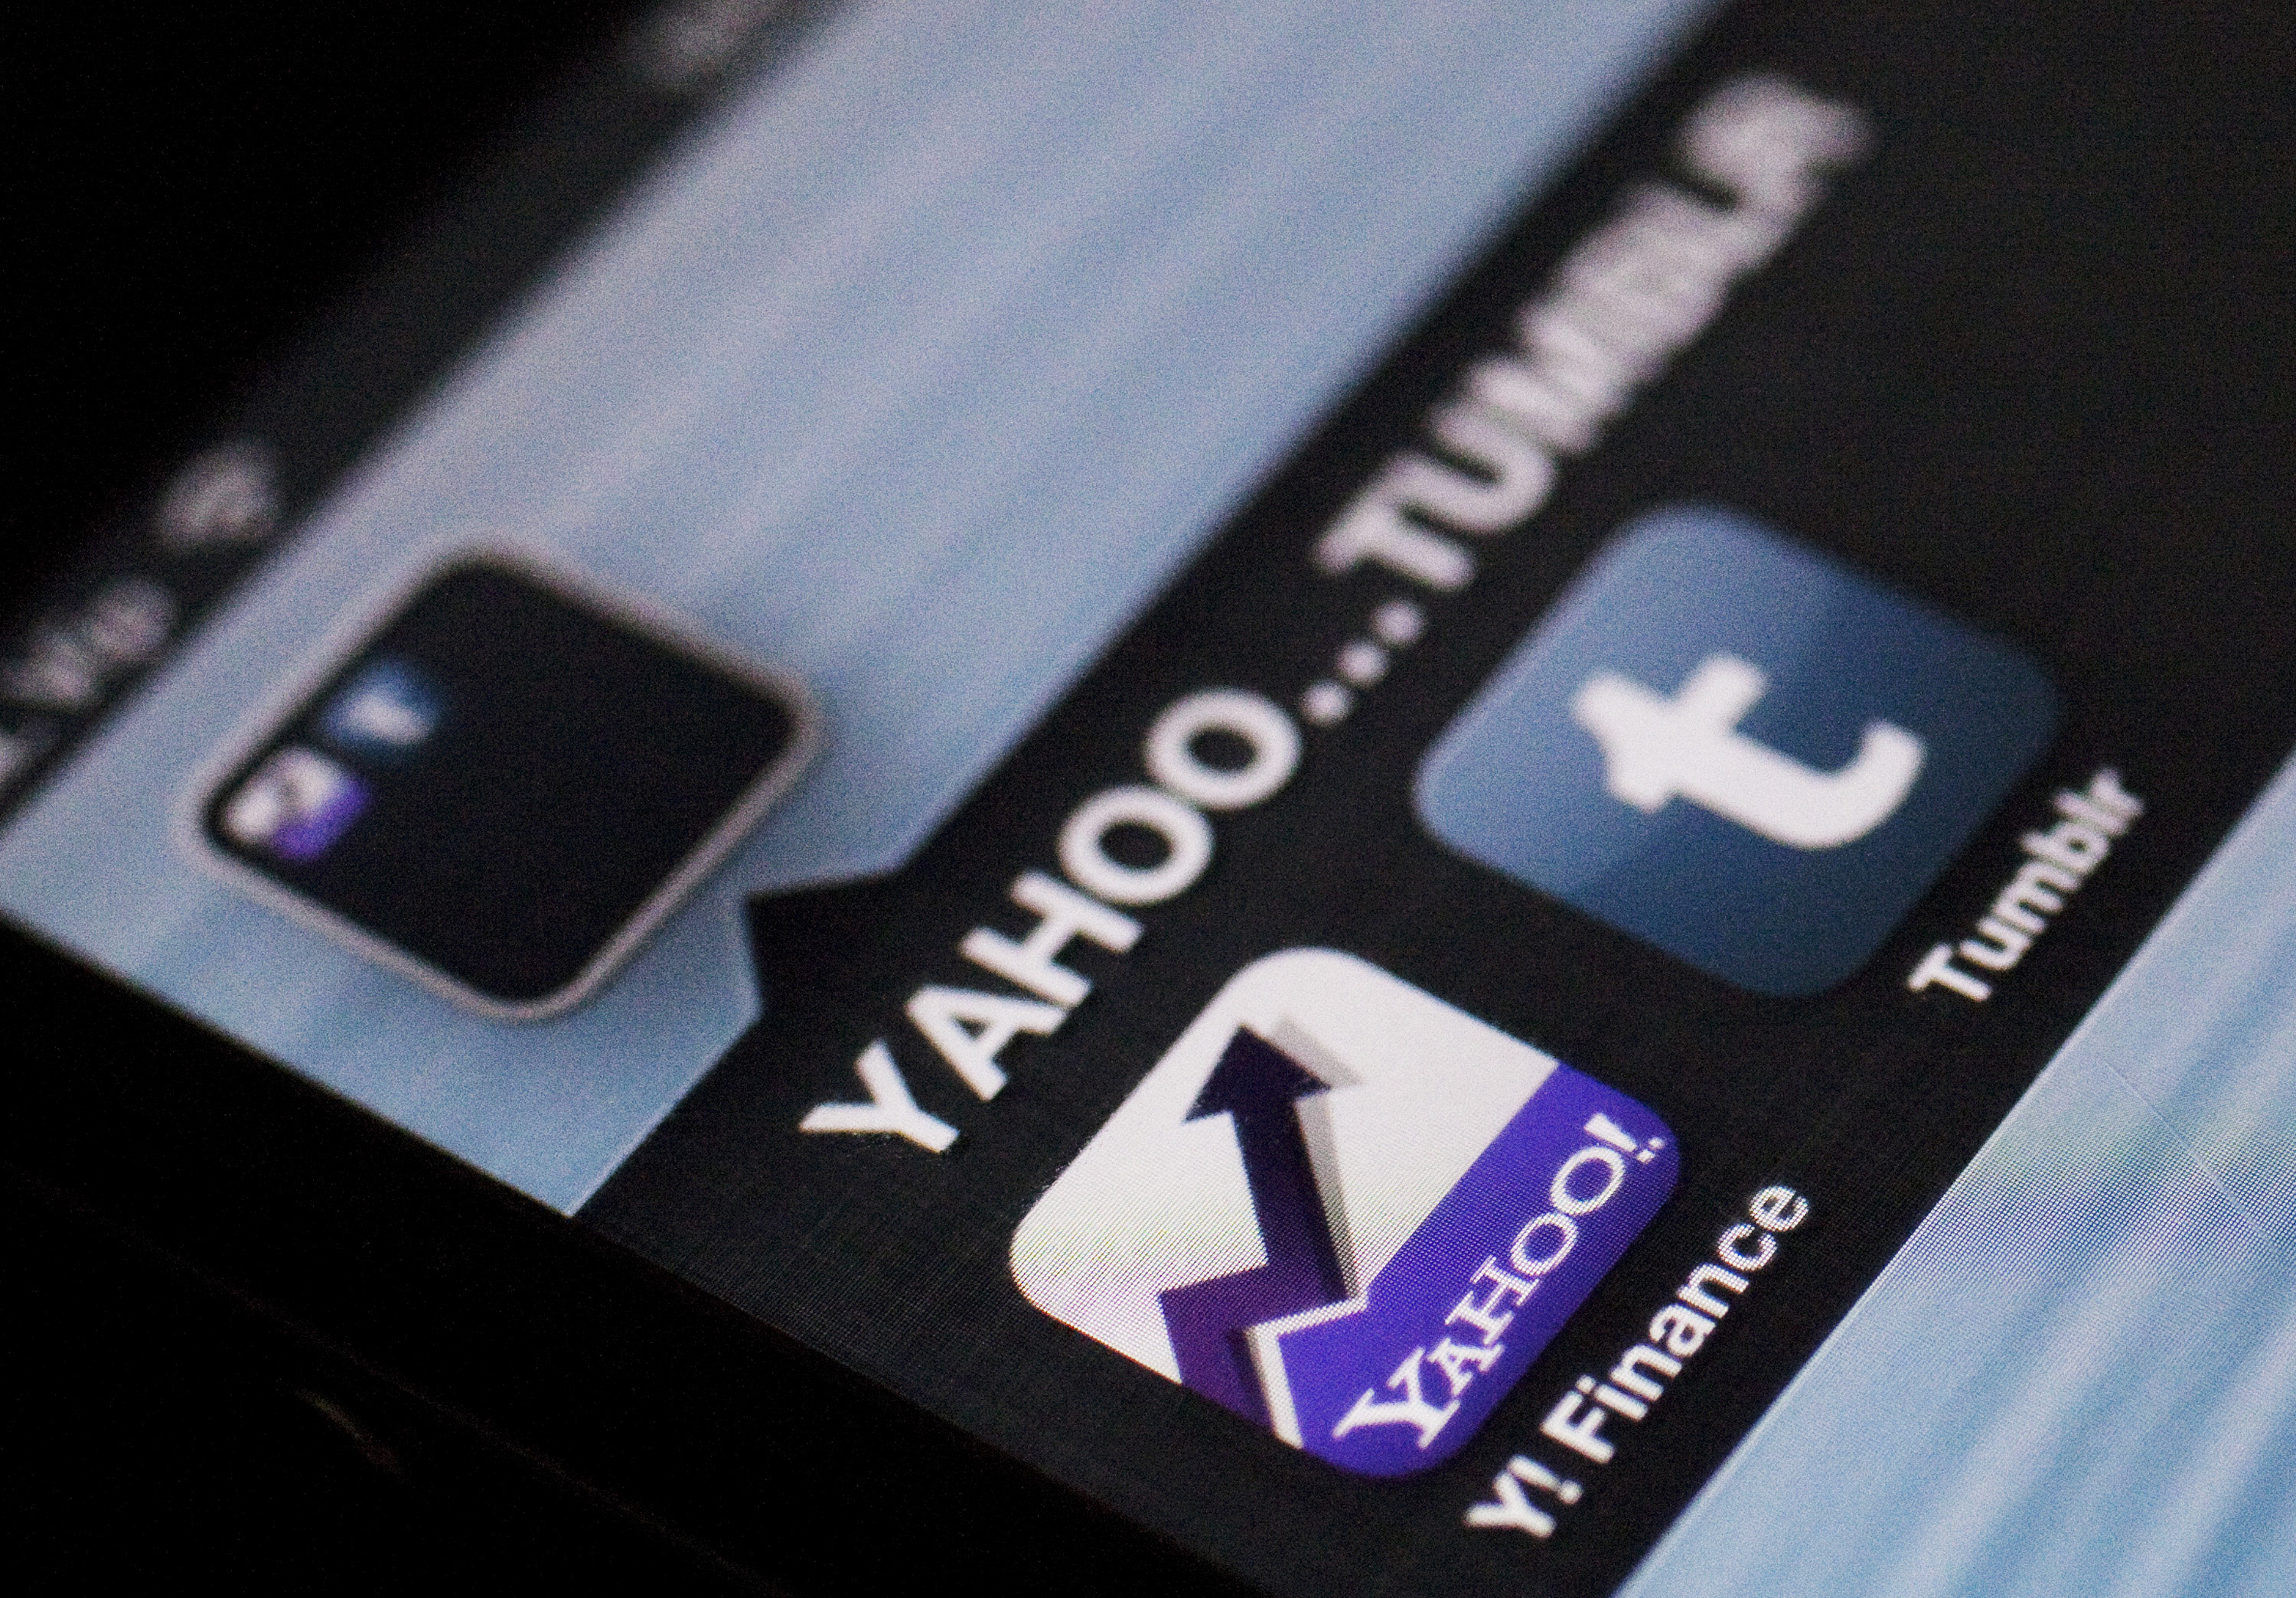 A photo illustration shows the applications of Yahoo and Tumblr on the screen of an iPhone in Zagreb May 20, 2013. Yahoo Inc said it is buying blogging service Tumblr for $1.1 billion cash, giving the struggling Internet pioneer a much-needed platform in social media to reach a younger generation of users. REUTERS/Antonio Bronic